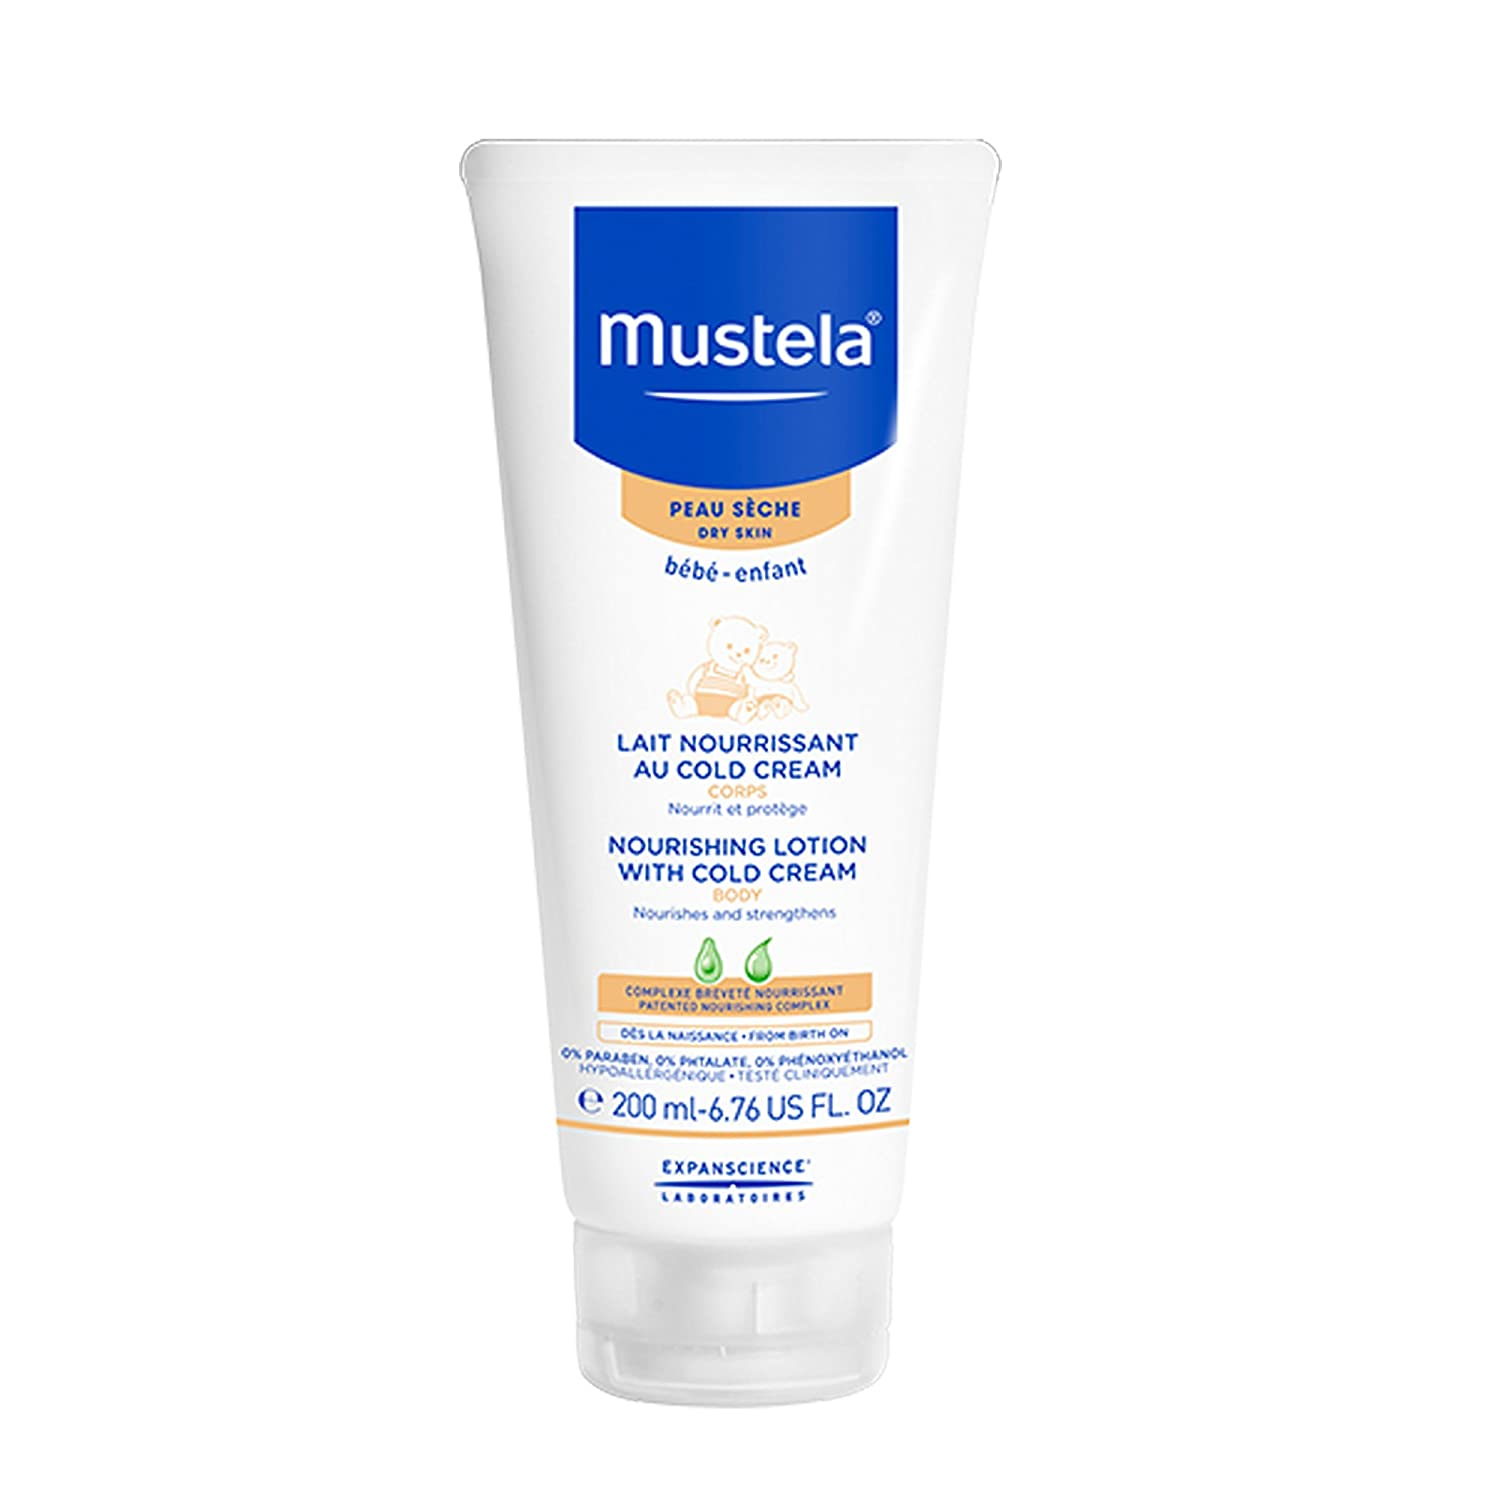 Amazon Com Mustela Nourishing Lotion With Cold Cream Baby Lotion For Dry Skin With Ceramides And Natural Avocado Perseose 6 76 Ounce Premium Beauty